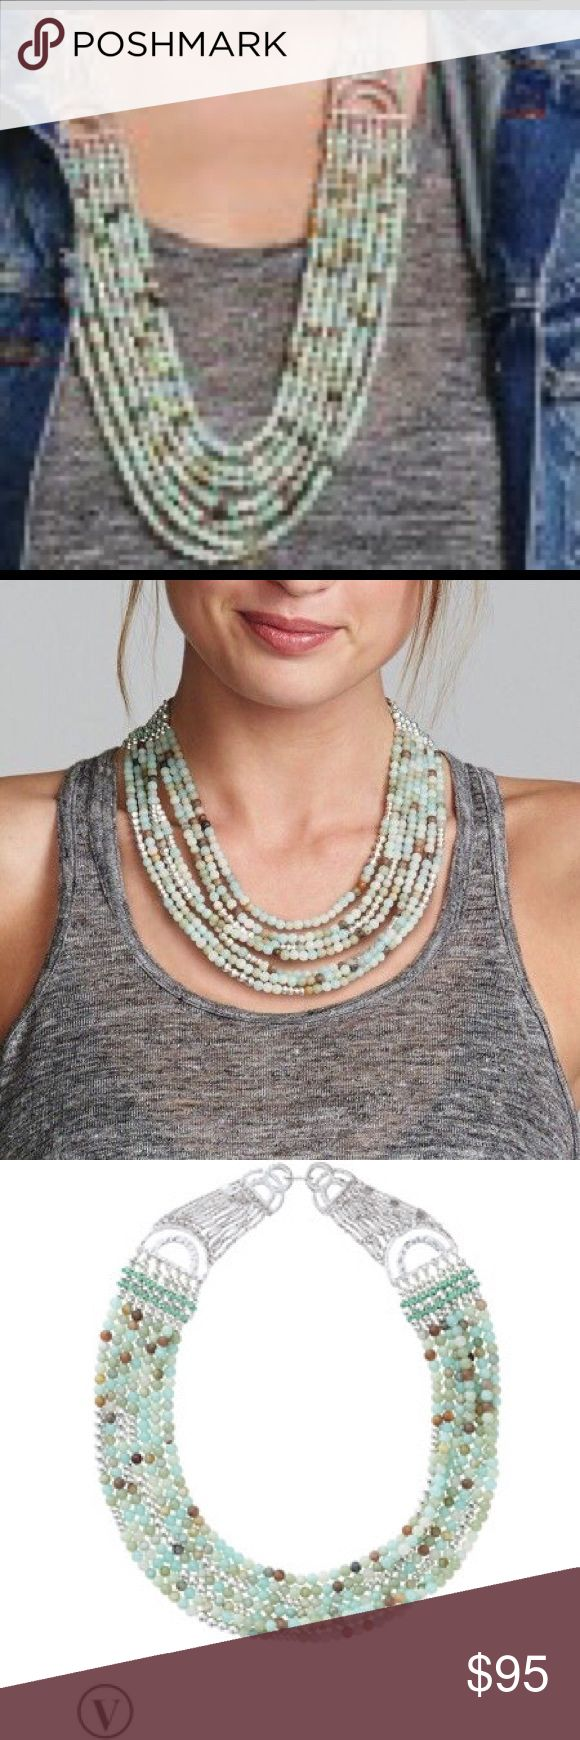 Stella and dot Cleopatra Statement Necklace Fabulous turquoise and brown stones. Versatile. Silver chain. Never worn. Box included! Stella & Dot Jewelry Necklaces